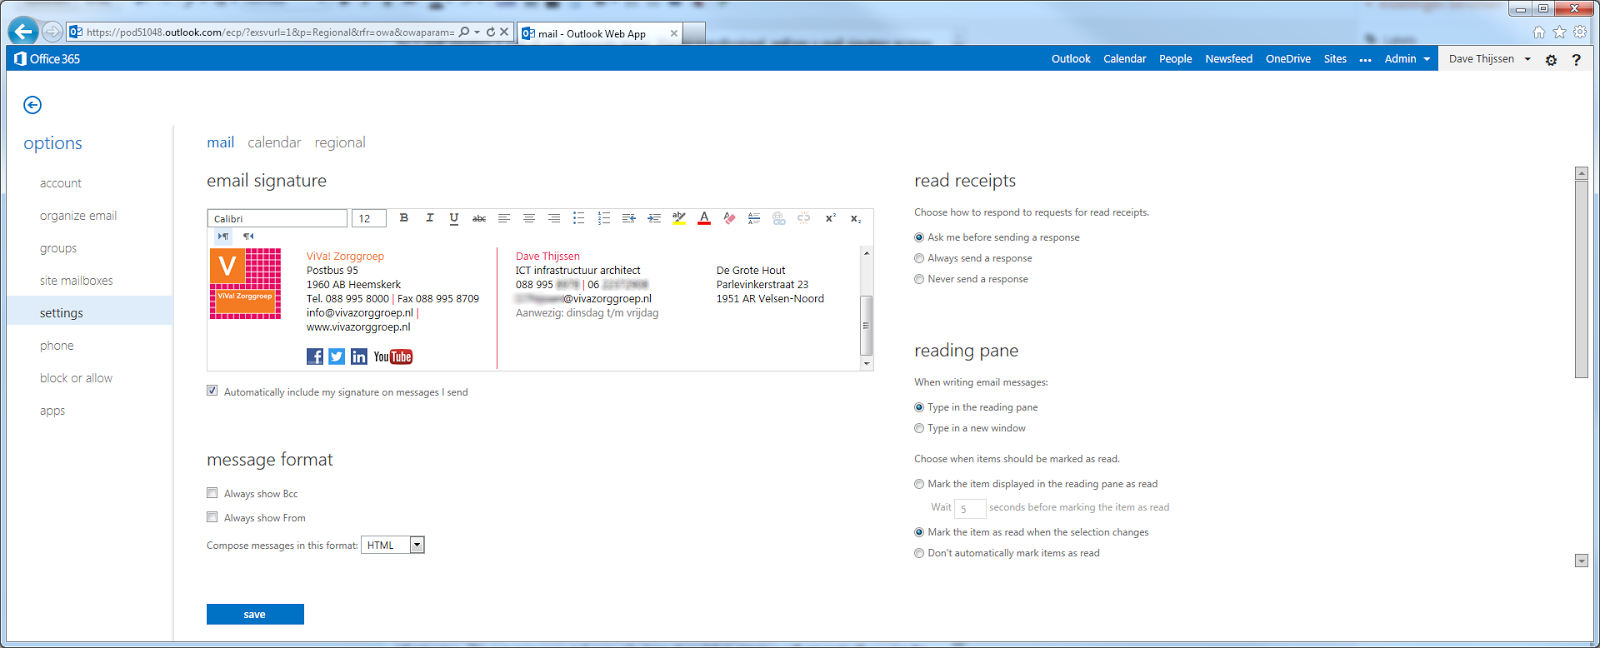 outlook 365 online